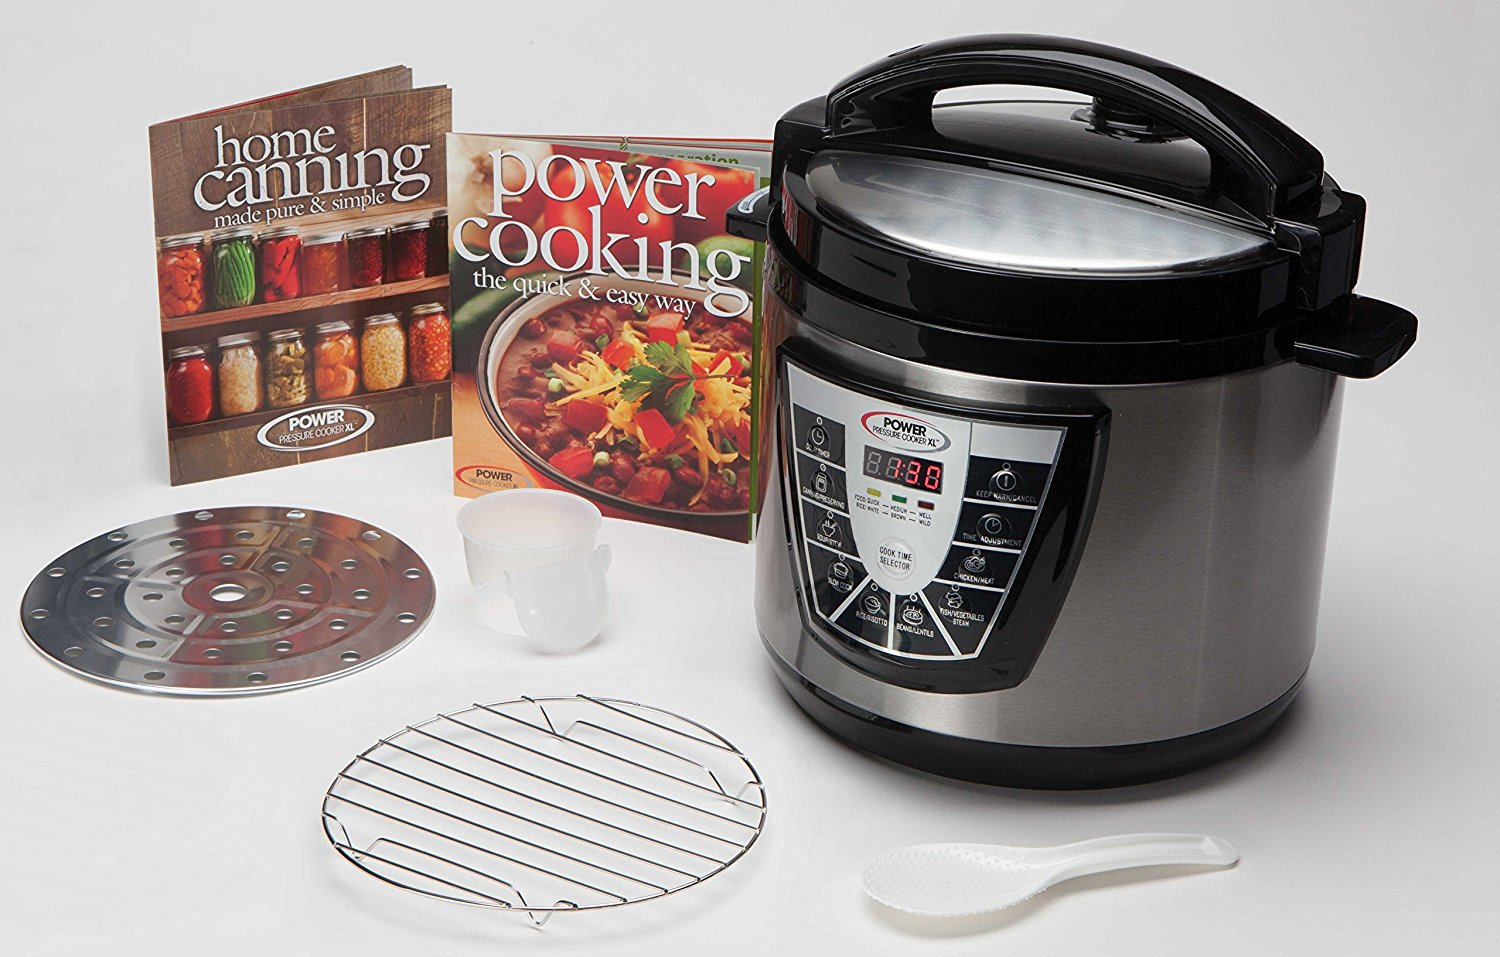 We initially bought a Zojirushi NP-GBCXT Induction Heating System Rice Cooker based on its great reviews on Amazon. Although this high-end rice cooker promises the ultimate in rice cooking, it only has preset programs for cooking.